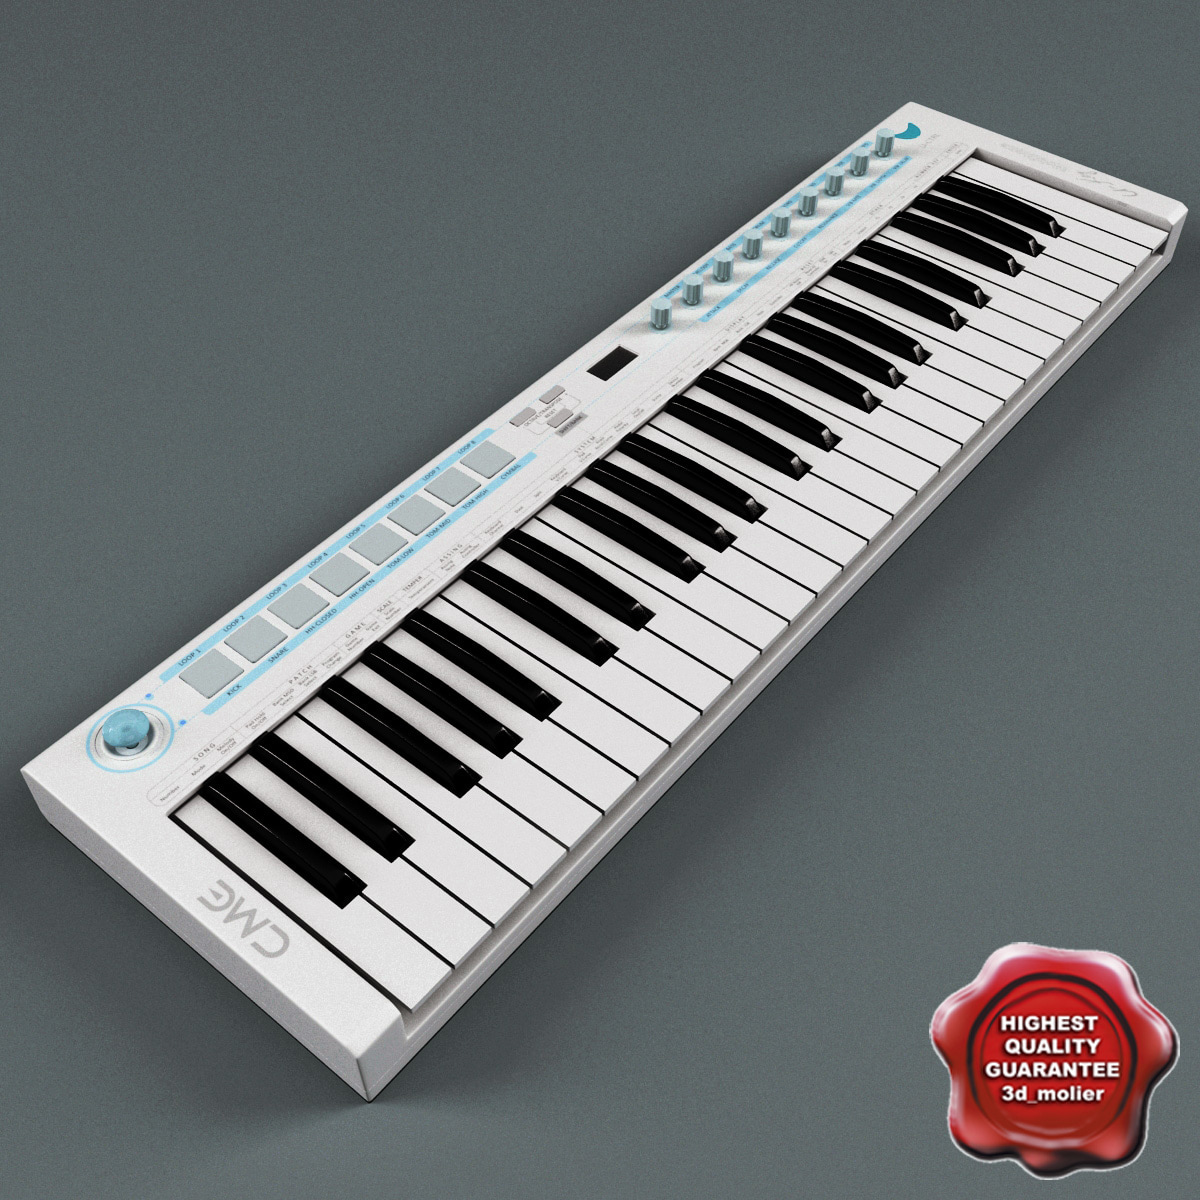 USB_MIDI_Keyboard_U-Key_White_00.jpg